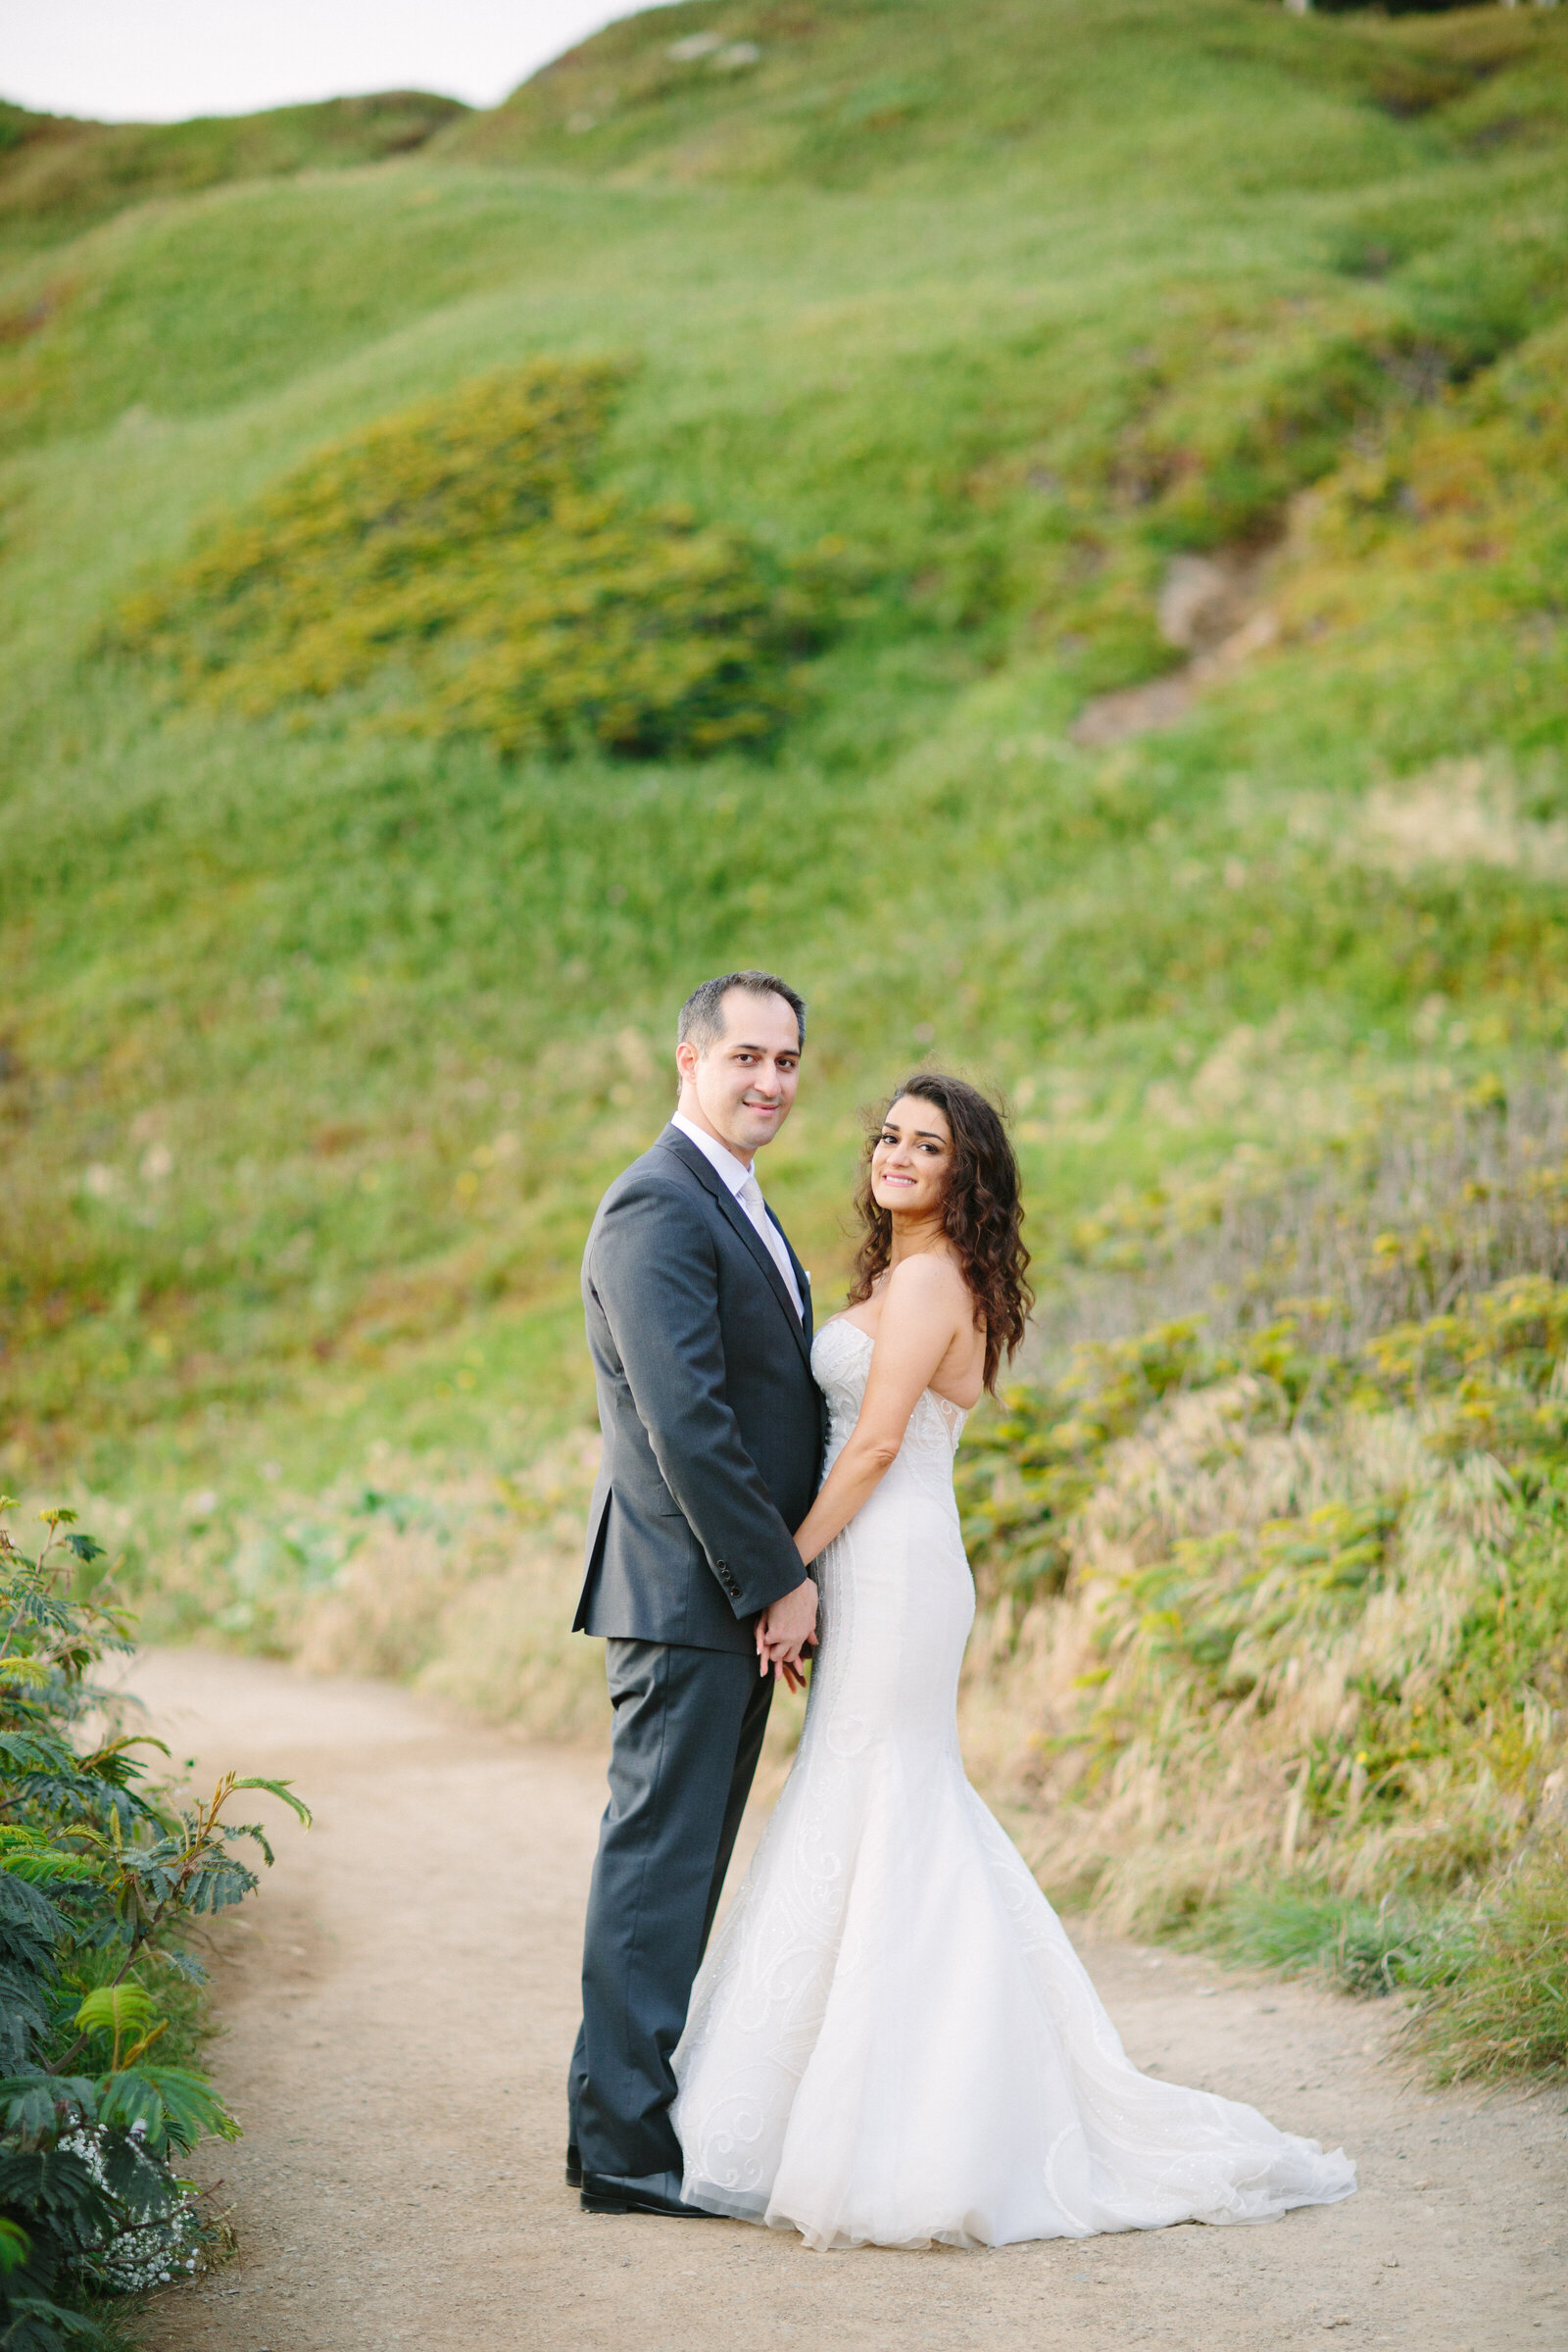 larissa-cleveland-elope-eleopement-intimate-wedding-photographer-san-francisco-napa-carmel-067